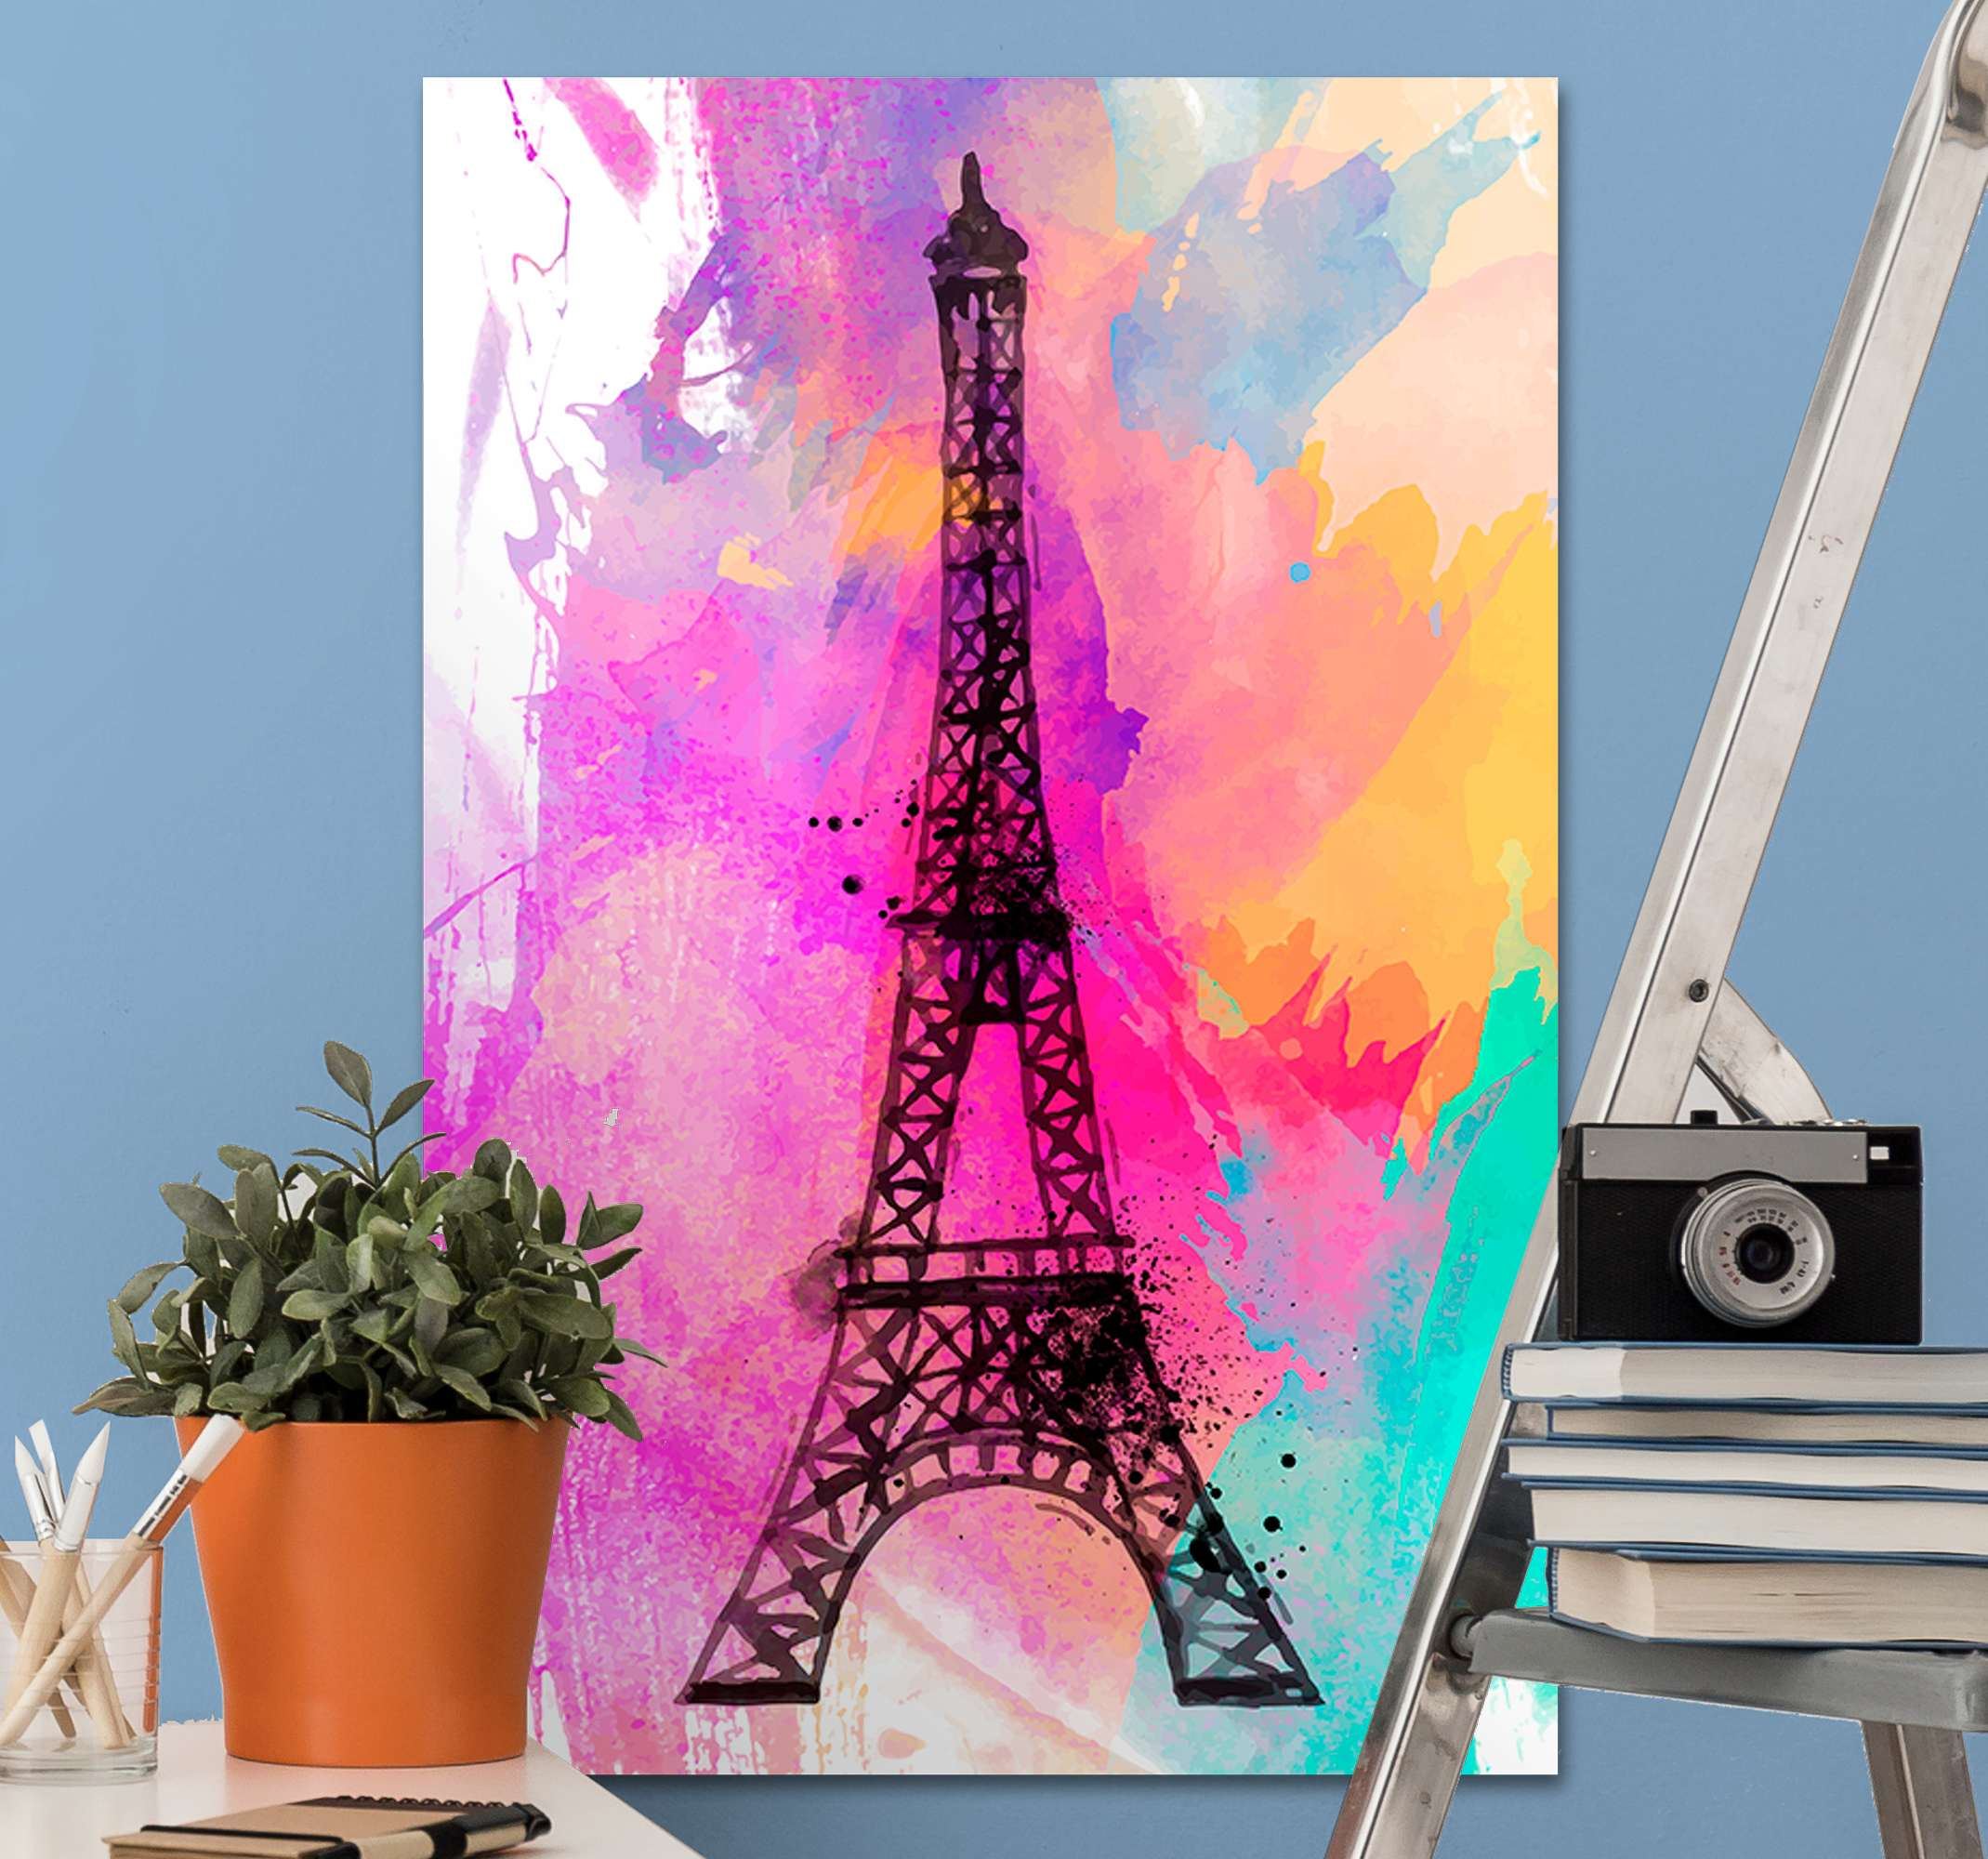 TenStickers. Paris Eiffel tower colorful city skyline prints. Paris painting Eiffel Tower landmark canvas wall print to brighten the decor of your home, office, living room, guest space, lounge, etc.